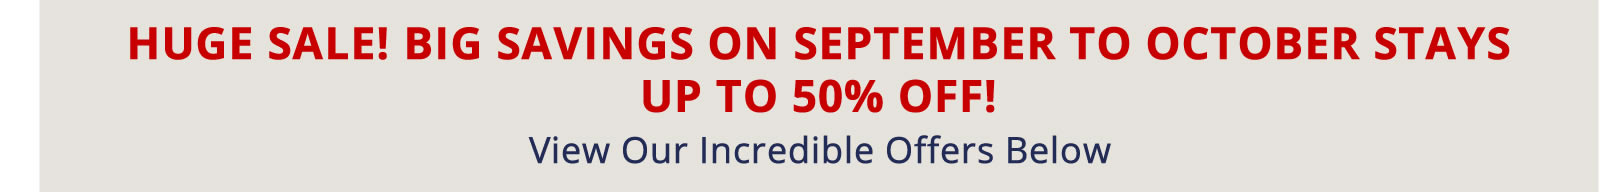 Book Now for Big Savings on September to October Stays. Up to 50% off!